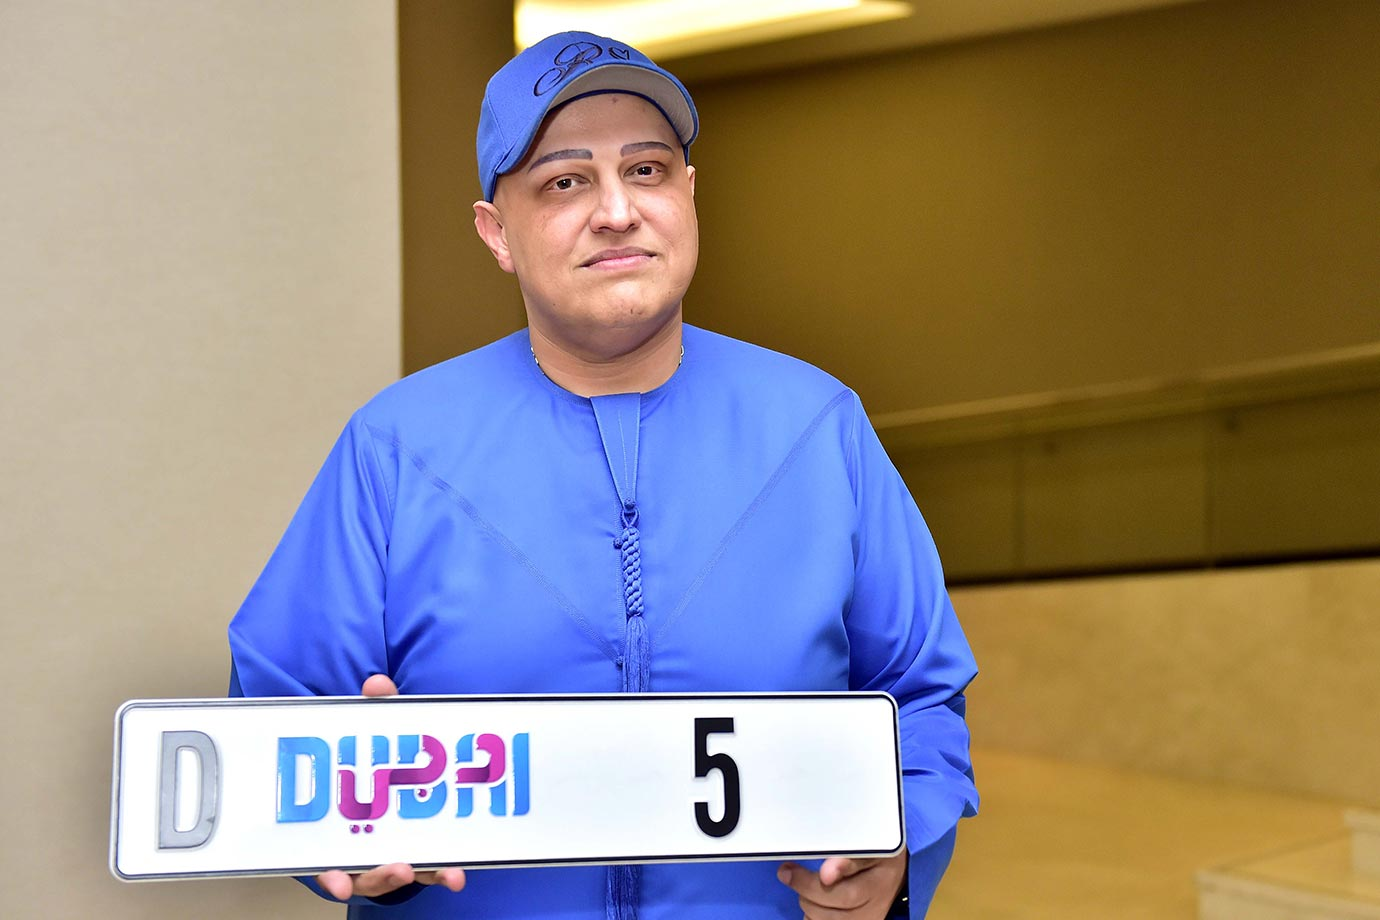 Indian Businessman Wins Distinguished Dubai Number Plate For Dh33million